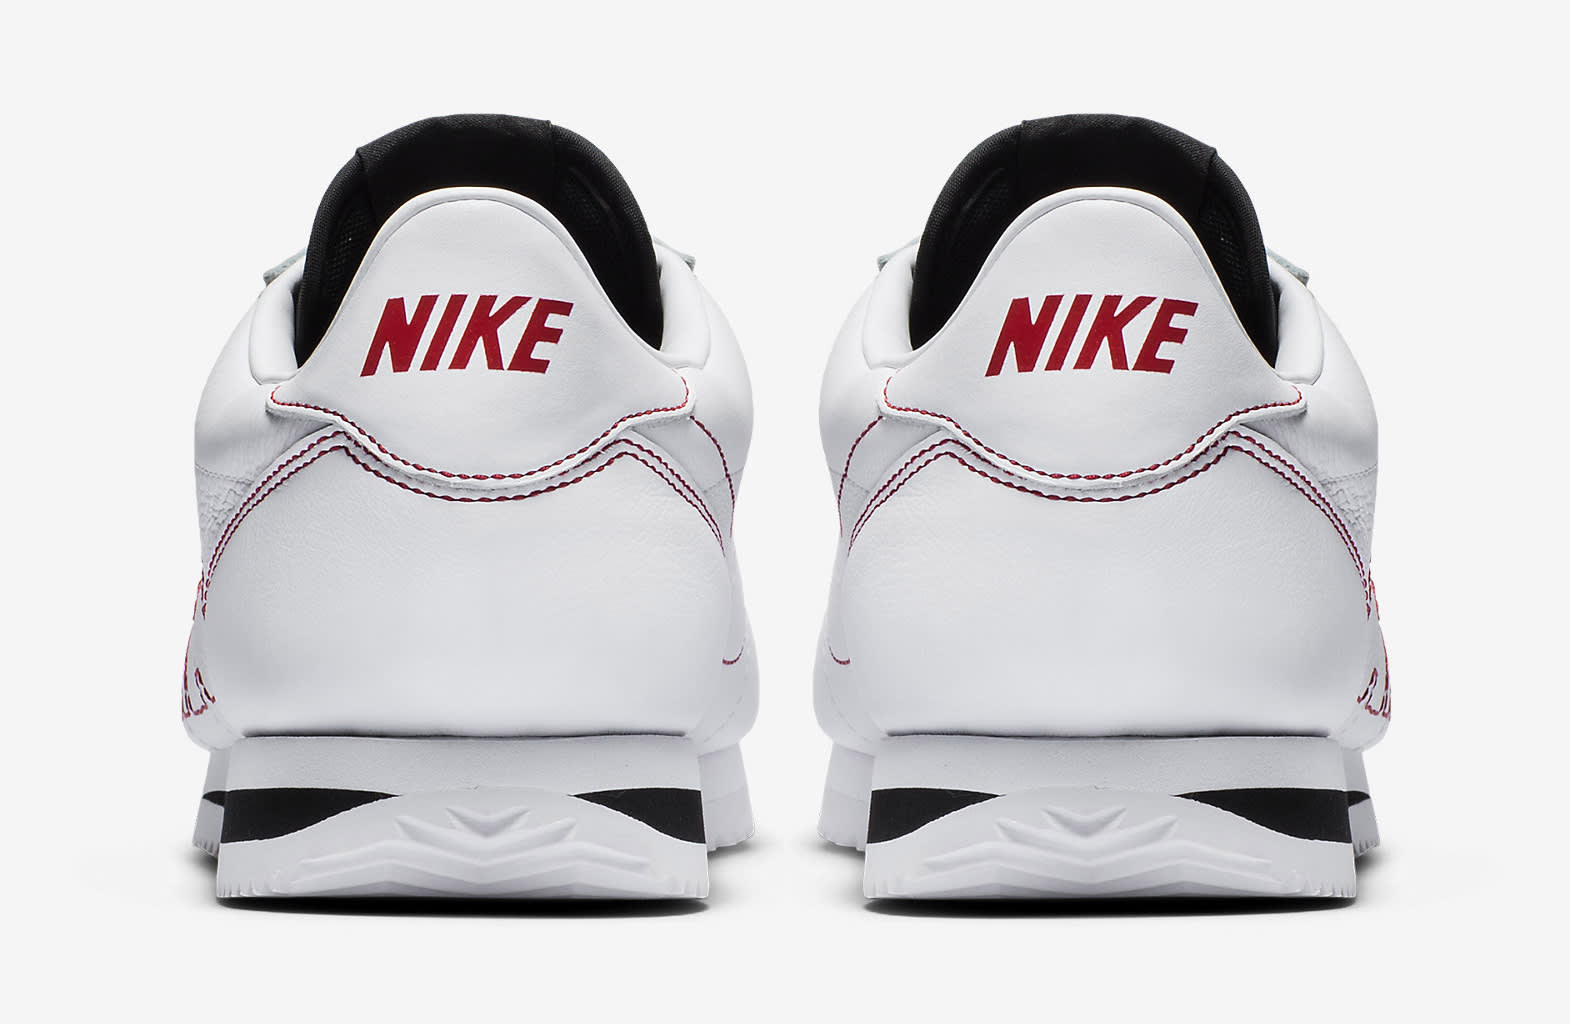 low priced 2a41e acc82 get nike cortez customized rapper 0c7f5 24ad2